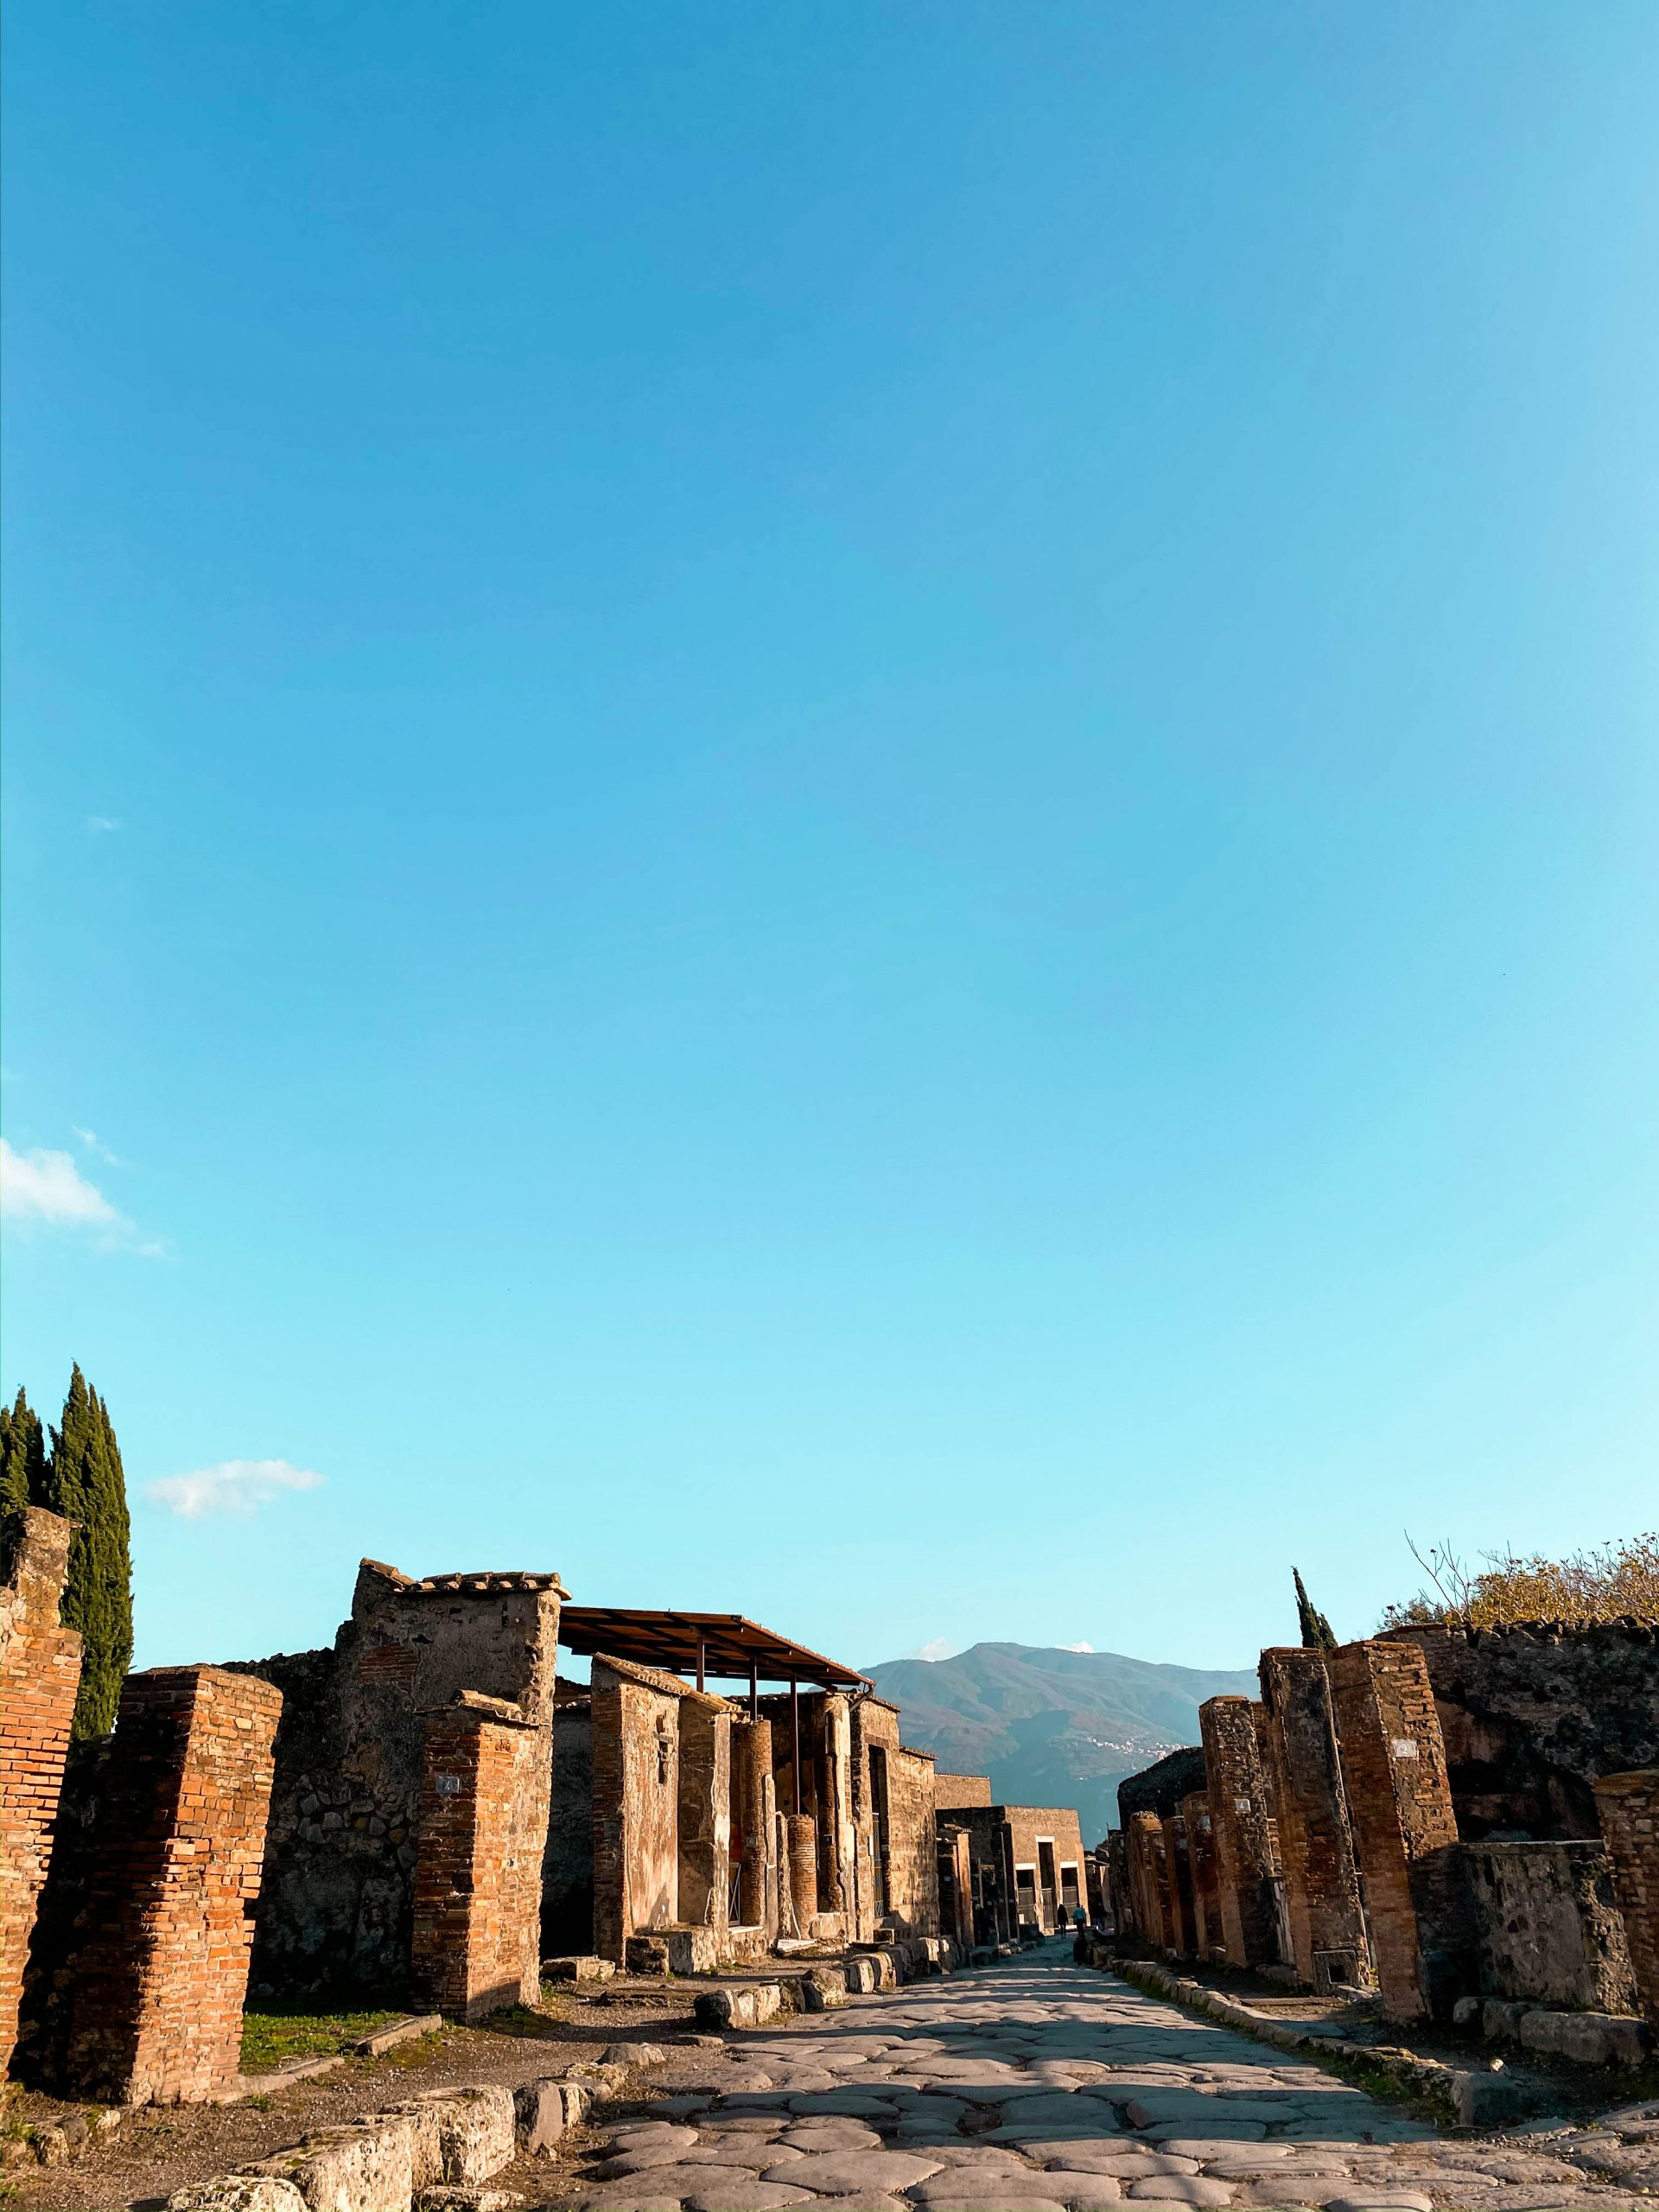 pompeii ruins ancient city italy neoclassicism neoclassical roman architecture UNESCO world heritage site how to visit pompeii from the amalfi coast mount vesuvius